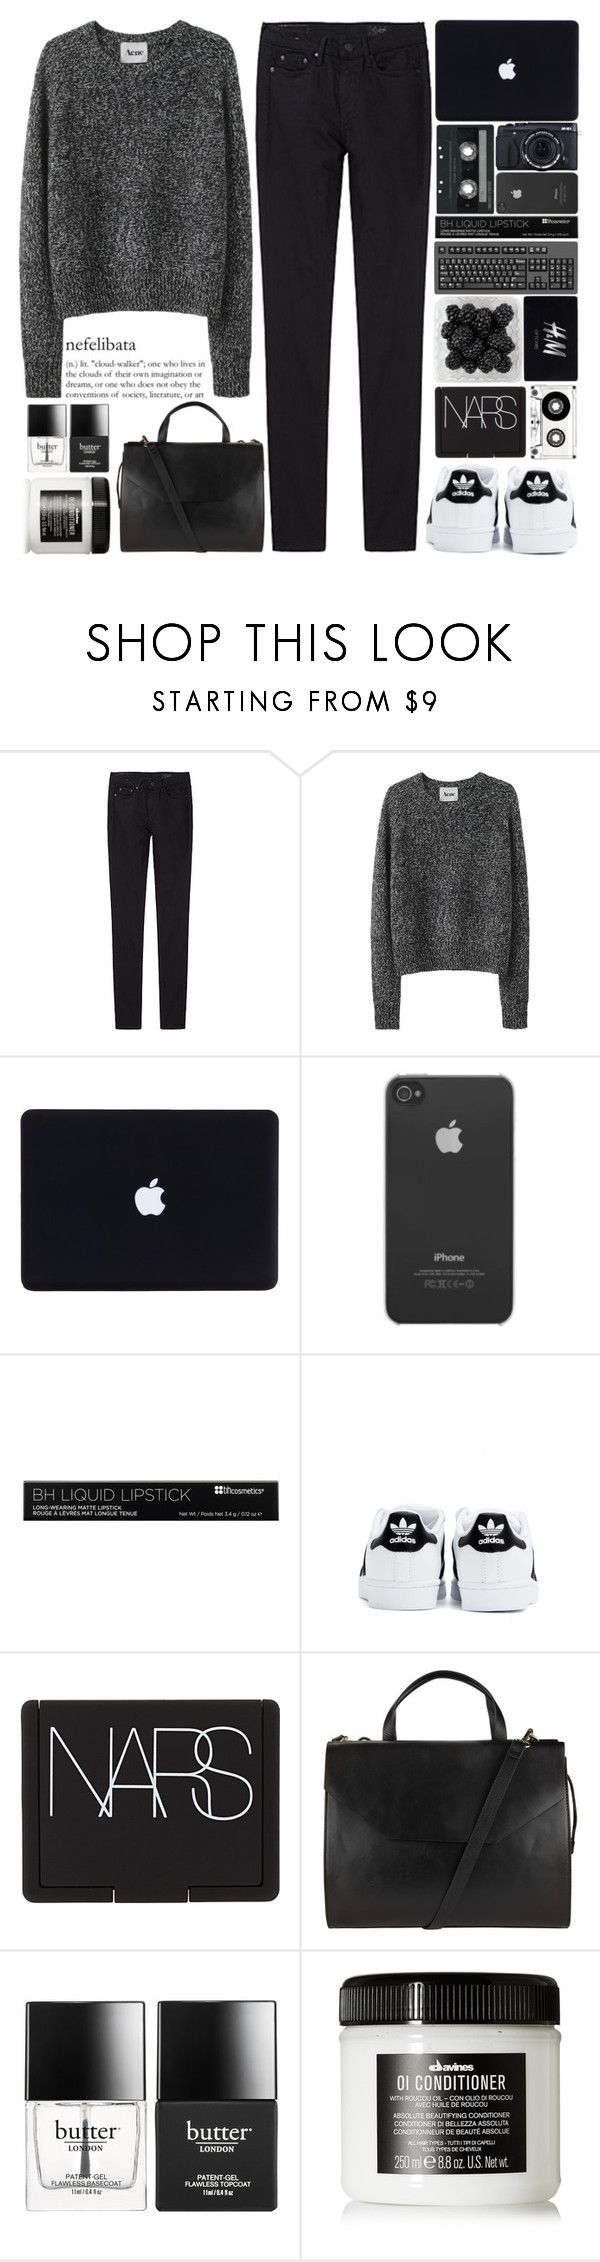 """""""No one ever looked so good in a dress And it hurts cause I know you won't be mine tonight"""" by one-styles ❤ liked on Polyvore featuring THEM ATELIER, Acne Studios, Incase, Fujifilm, CASSETTE, H&M, adidas, NARS Cosmetics, John Lewis and Butter London"""